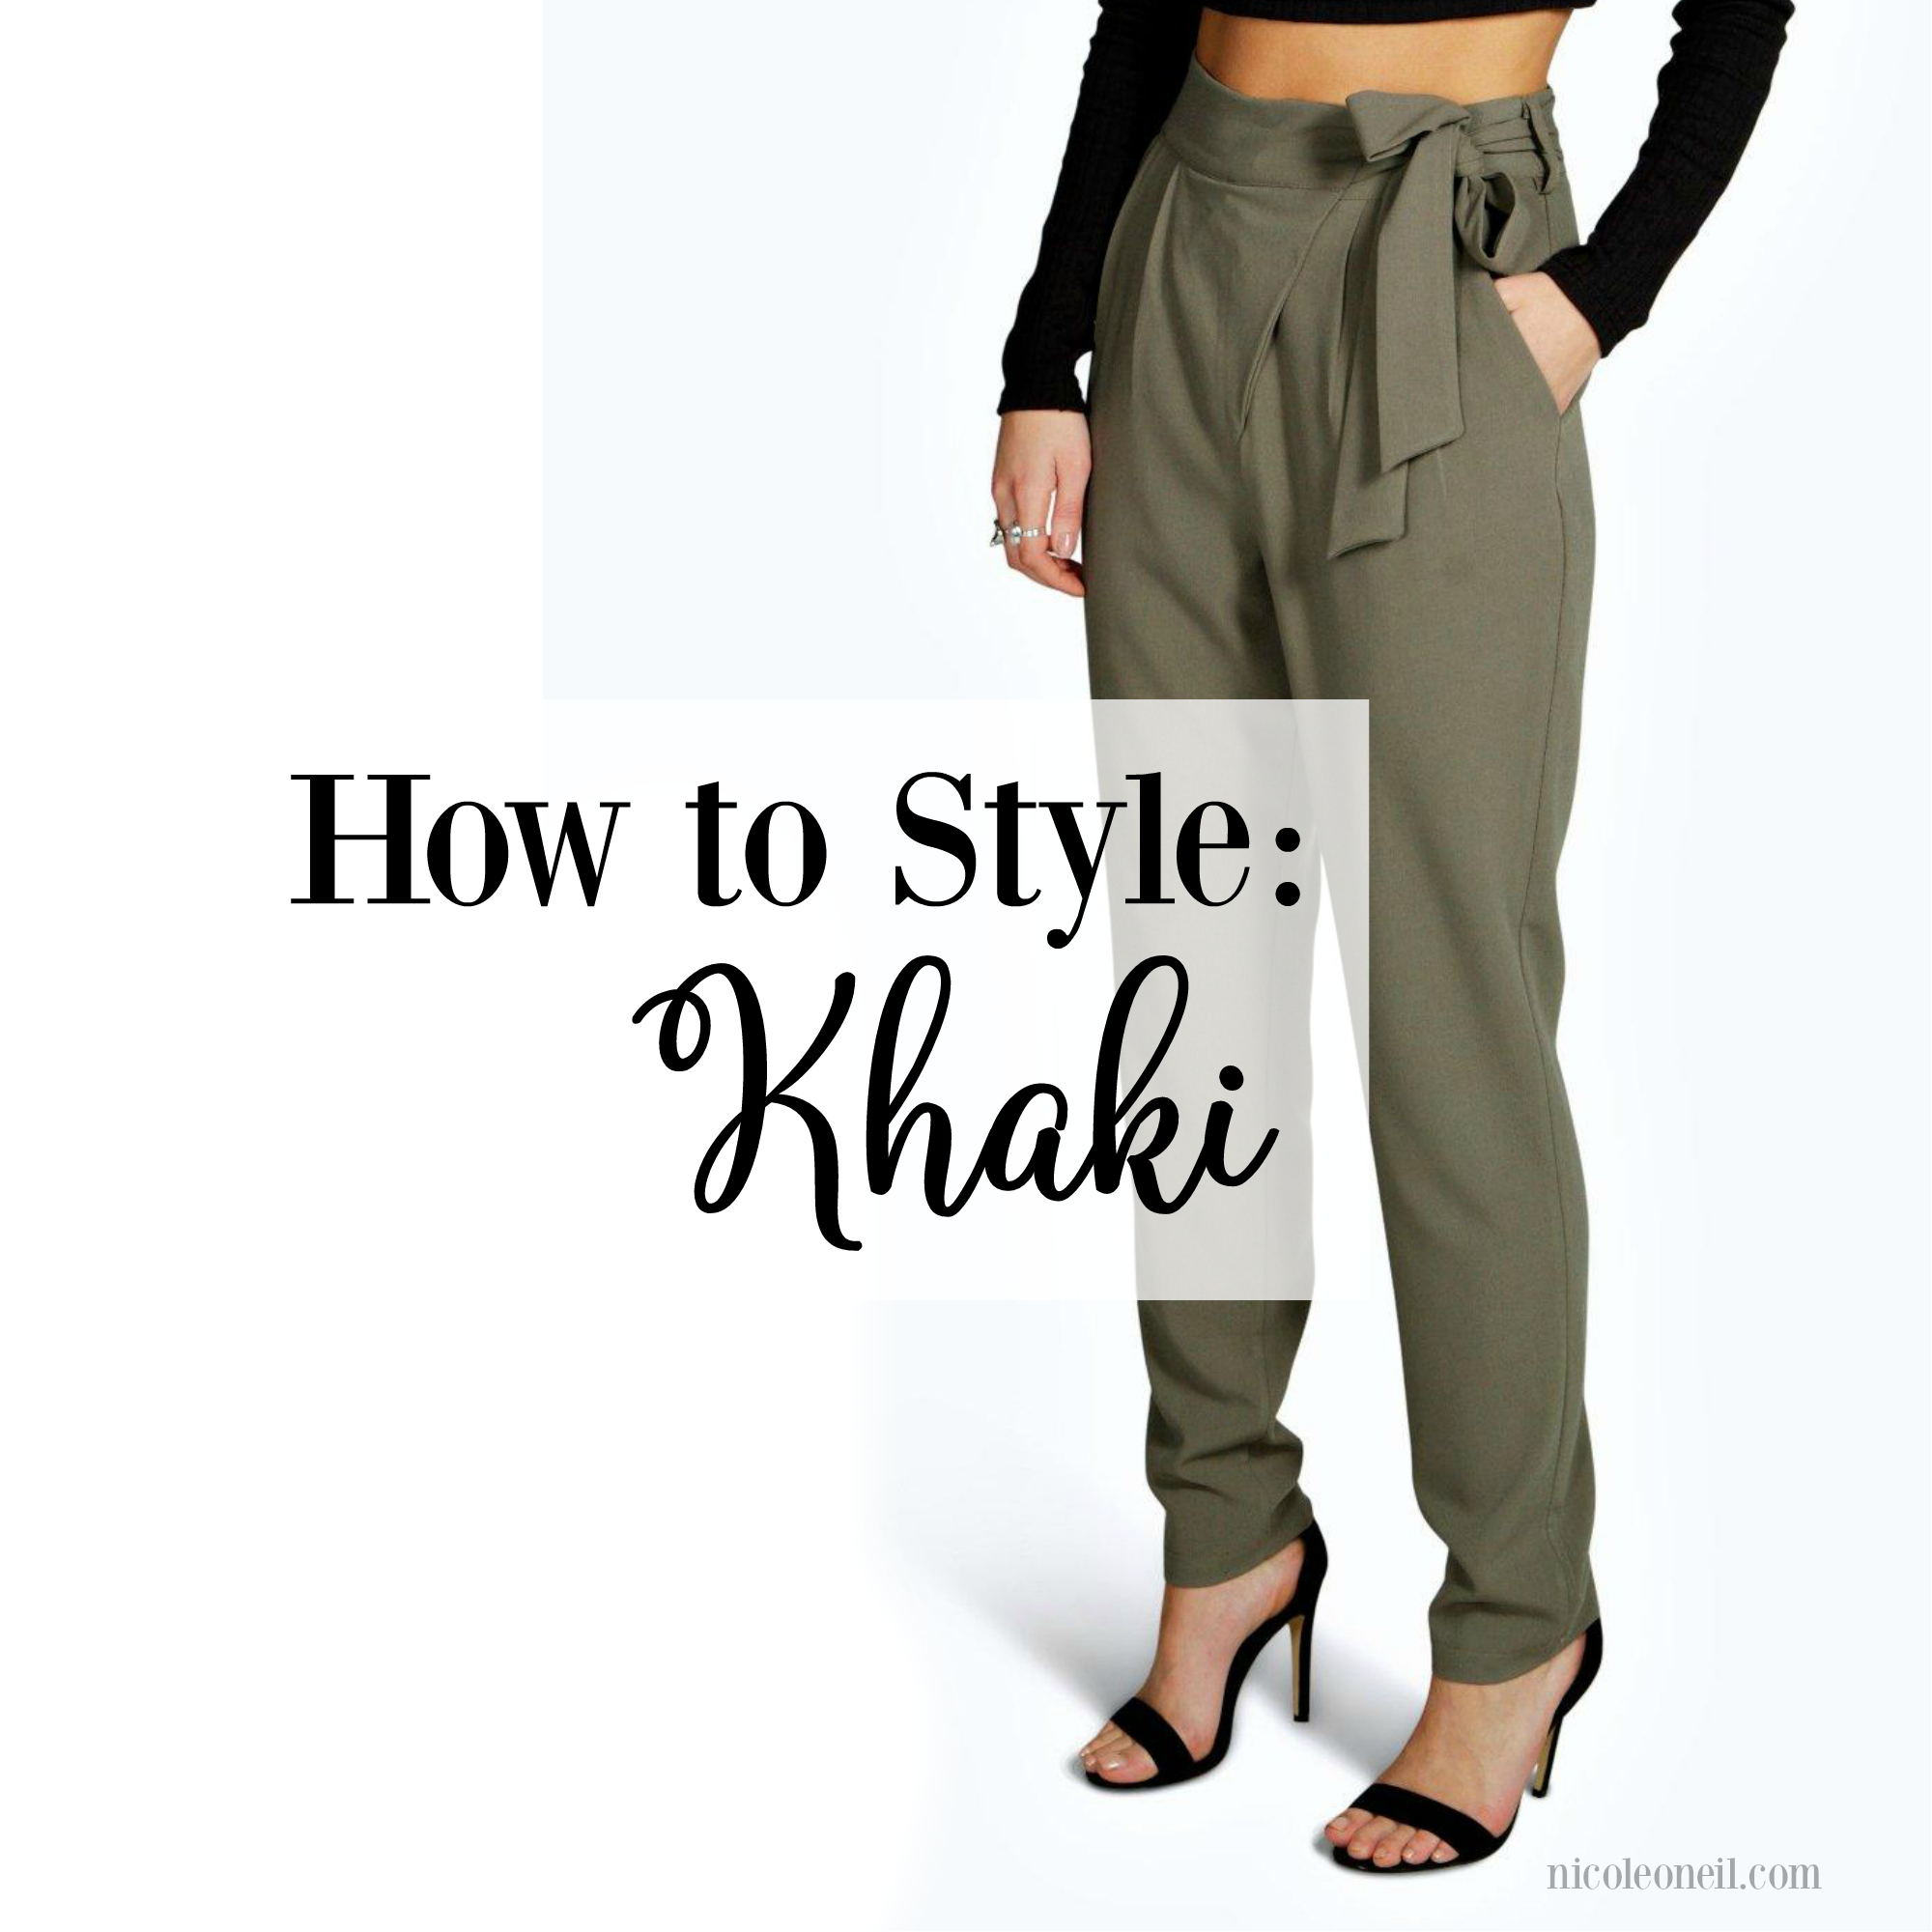 How to Style Khaki | Get Khaki Outfit Ideas for every season with casual, corporate and dressed up options for Spring, Summer, Autumn (Fall) and Winter 2017.